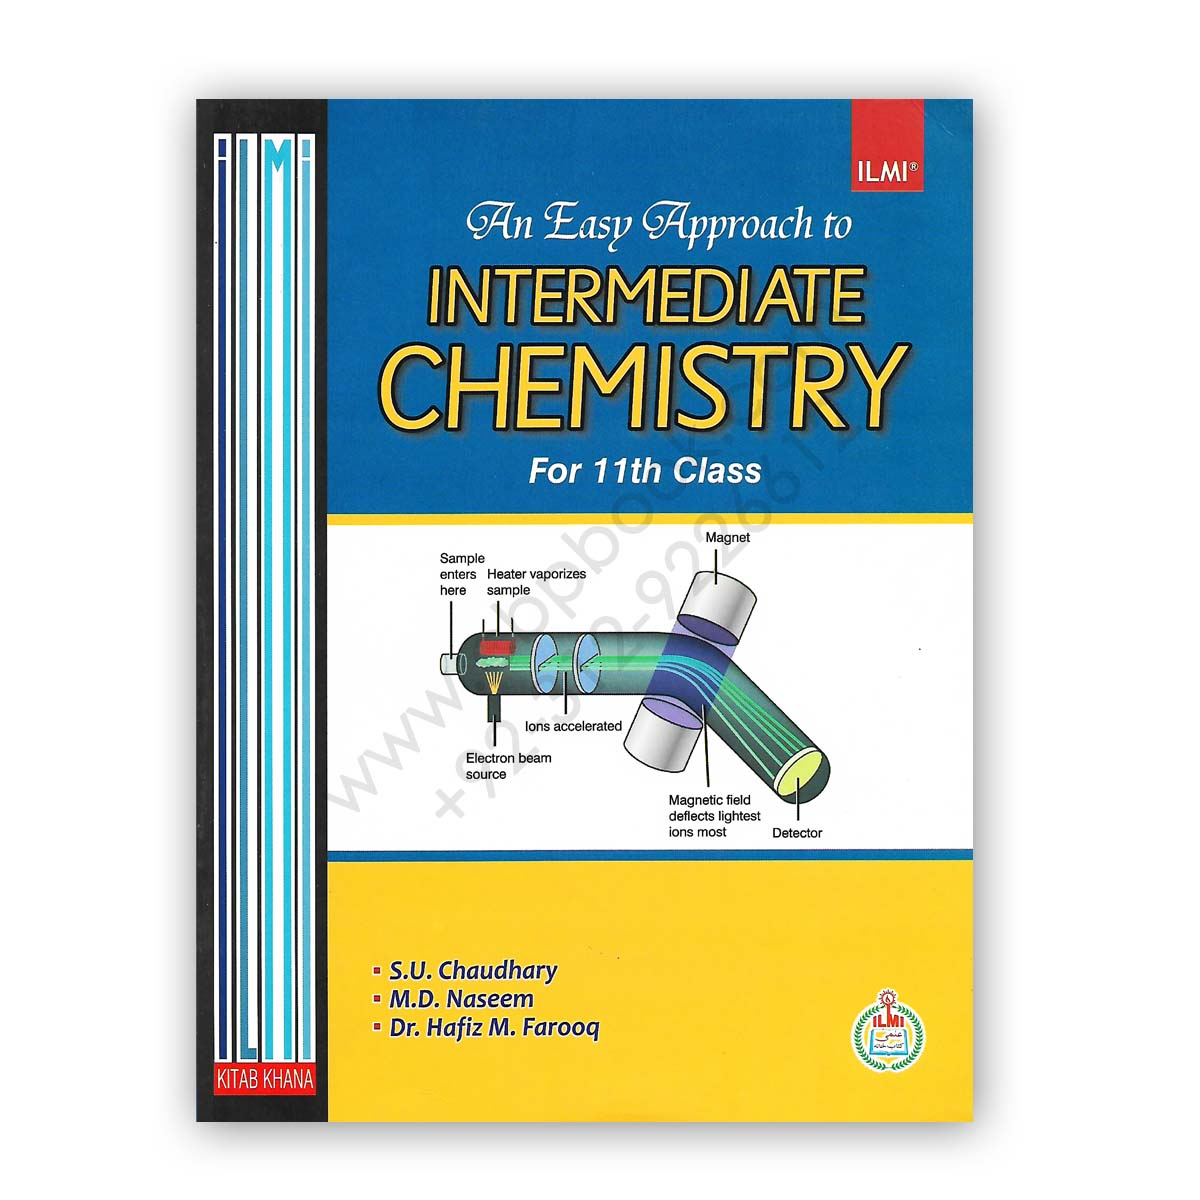 ilmi an easy approach to intermediate chemistry for 11th class